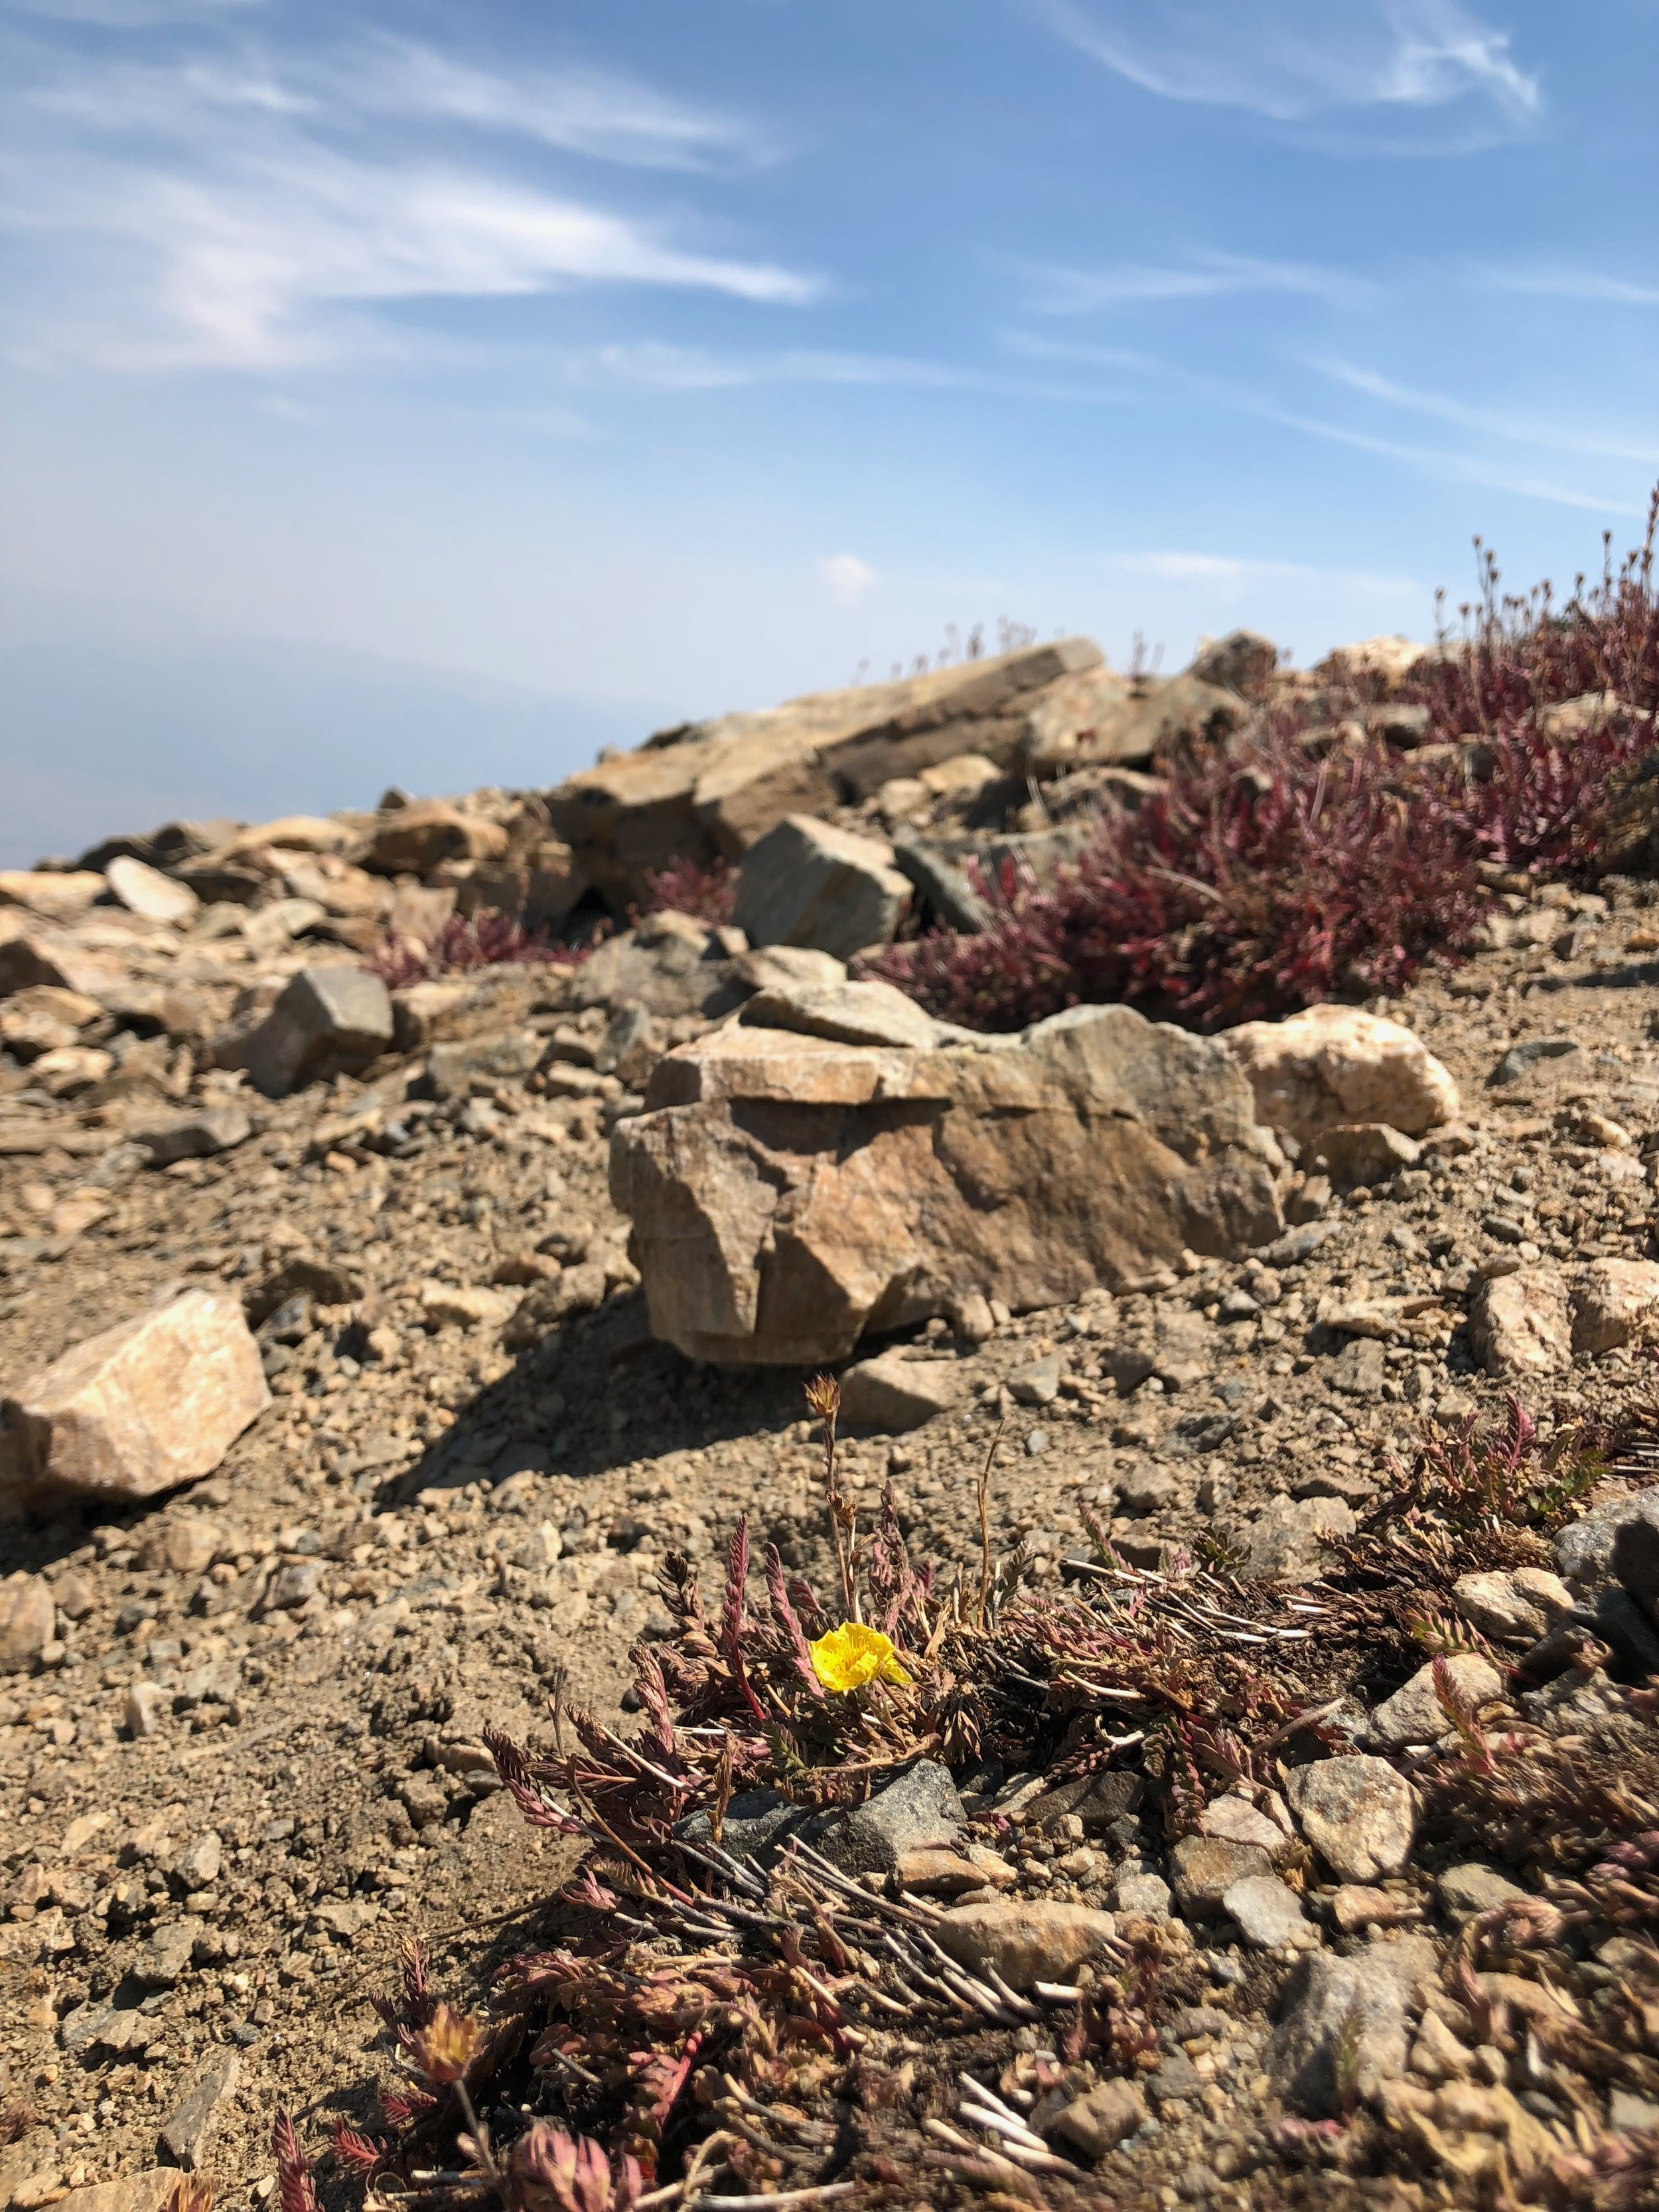 Last of the wildflowers on the mountain